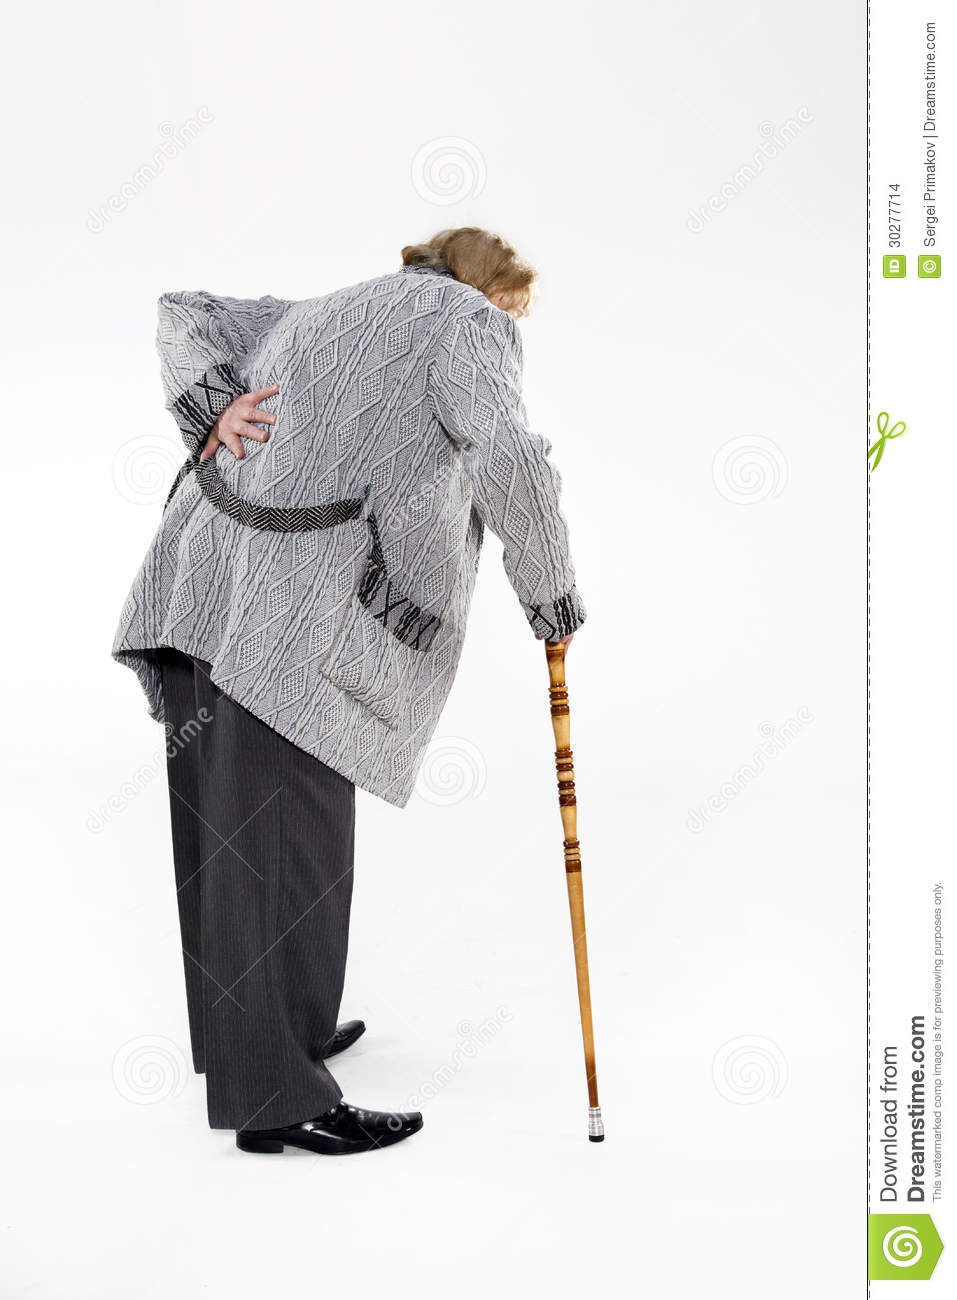 Old Man With A Cane Stock Images - Image: 30277714